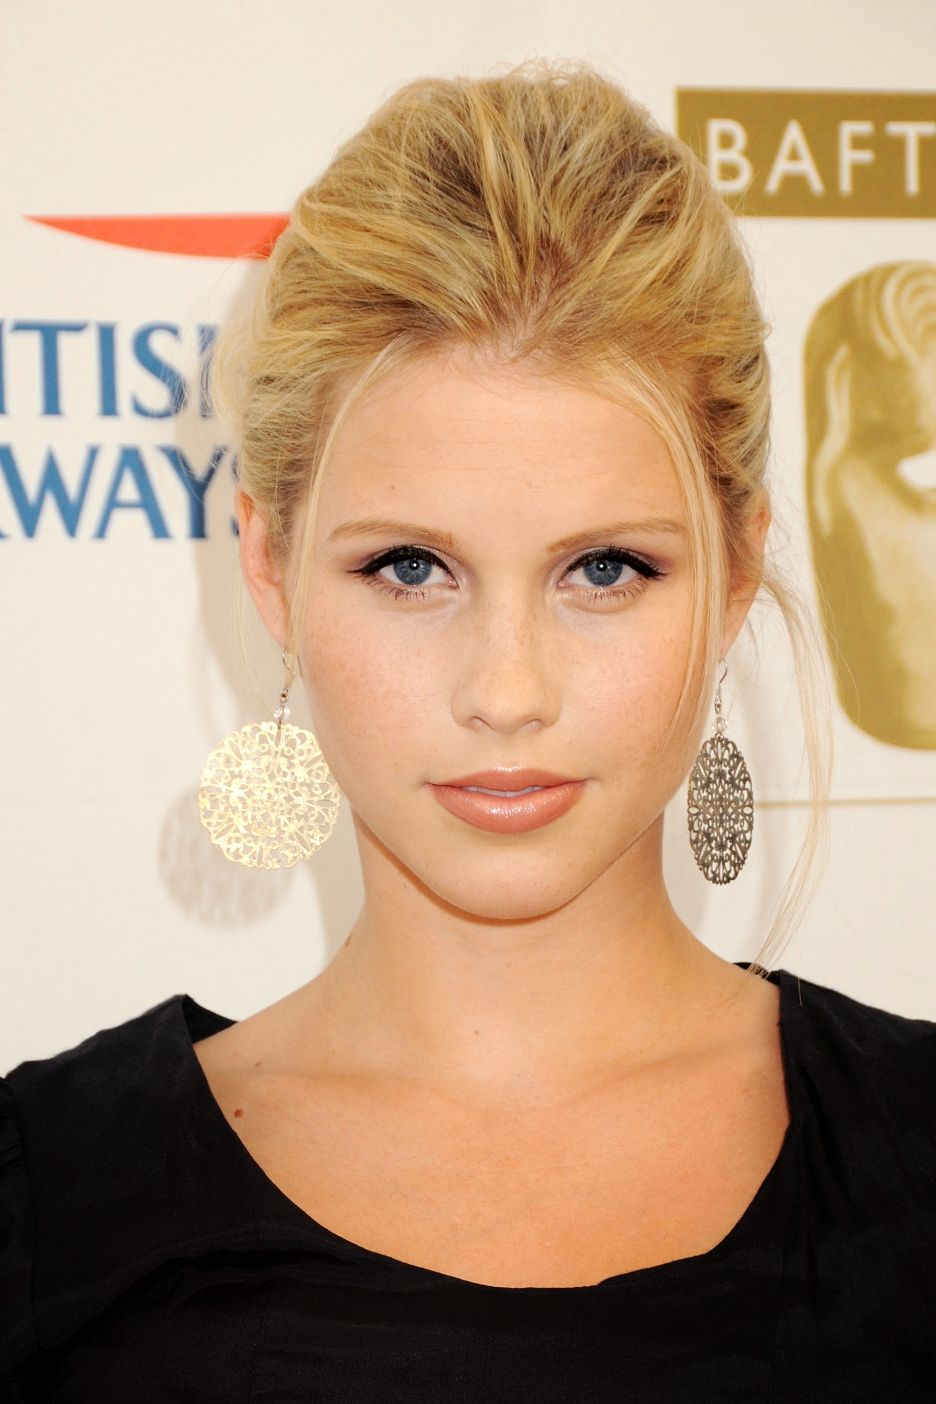 claire holt imdbclaire holt gif, claire holt instagram, claire holt and phoebe tonkin, claire holt gif hunt, claire holt photoshoot, claire holt vk, claire holt png, claire holt вк, claire holt and nina dobrev, claire holt биография, claire holt wiki, claire holt tumblr gif, claire holt listal, claire holt and joseph morgan, claire holt wallpaper, claire holt tattoo, claire holt official site, claire holt photo, claire holt felicity jones, claire holt imdb